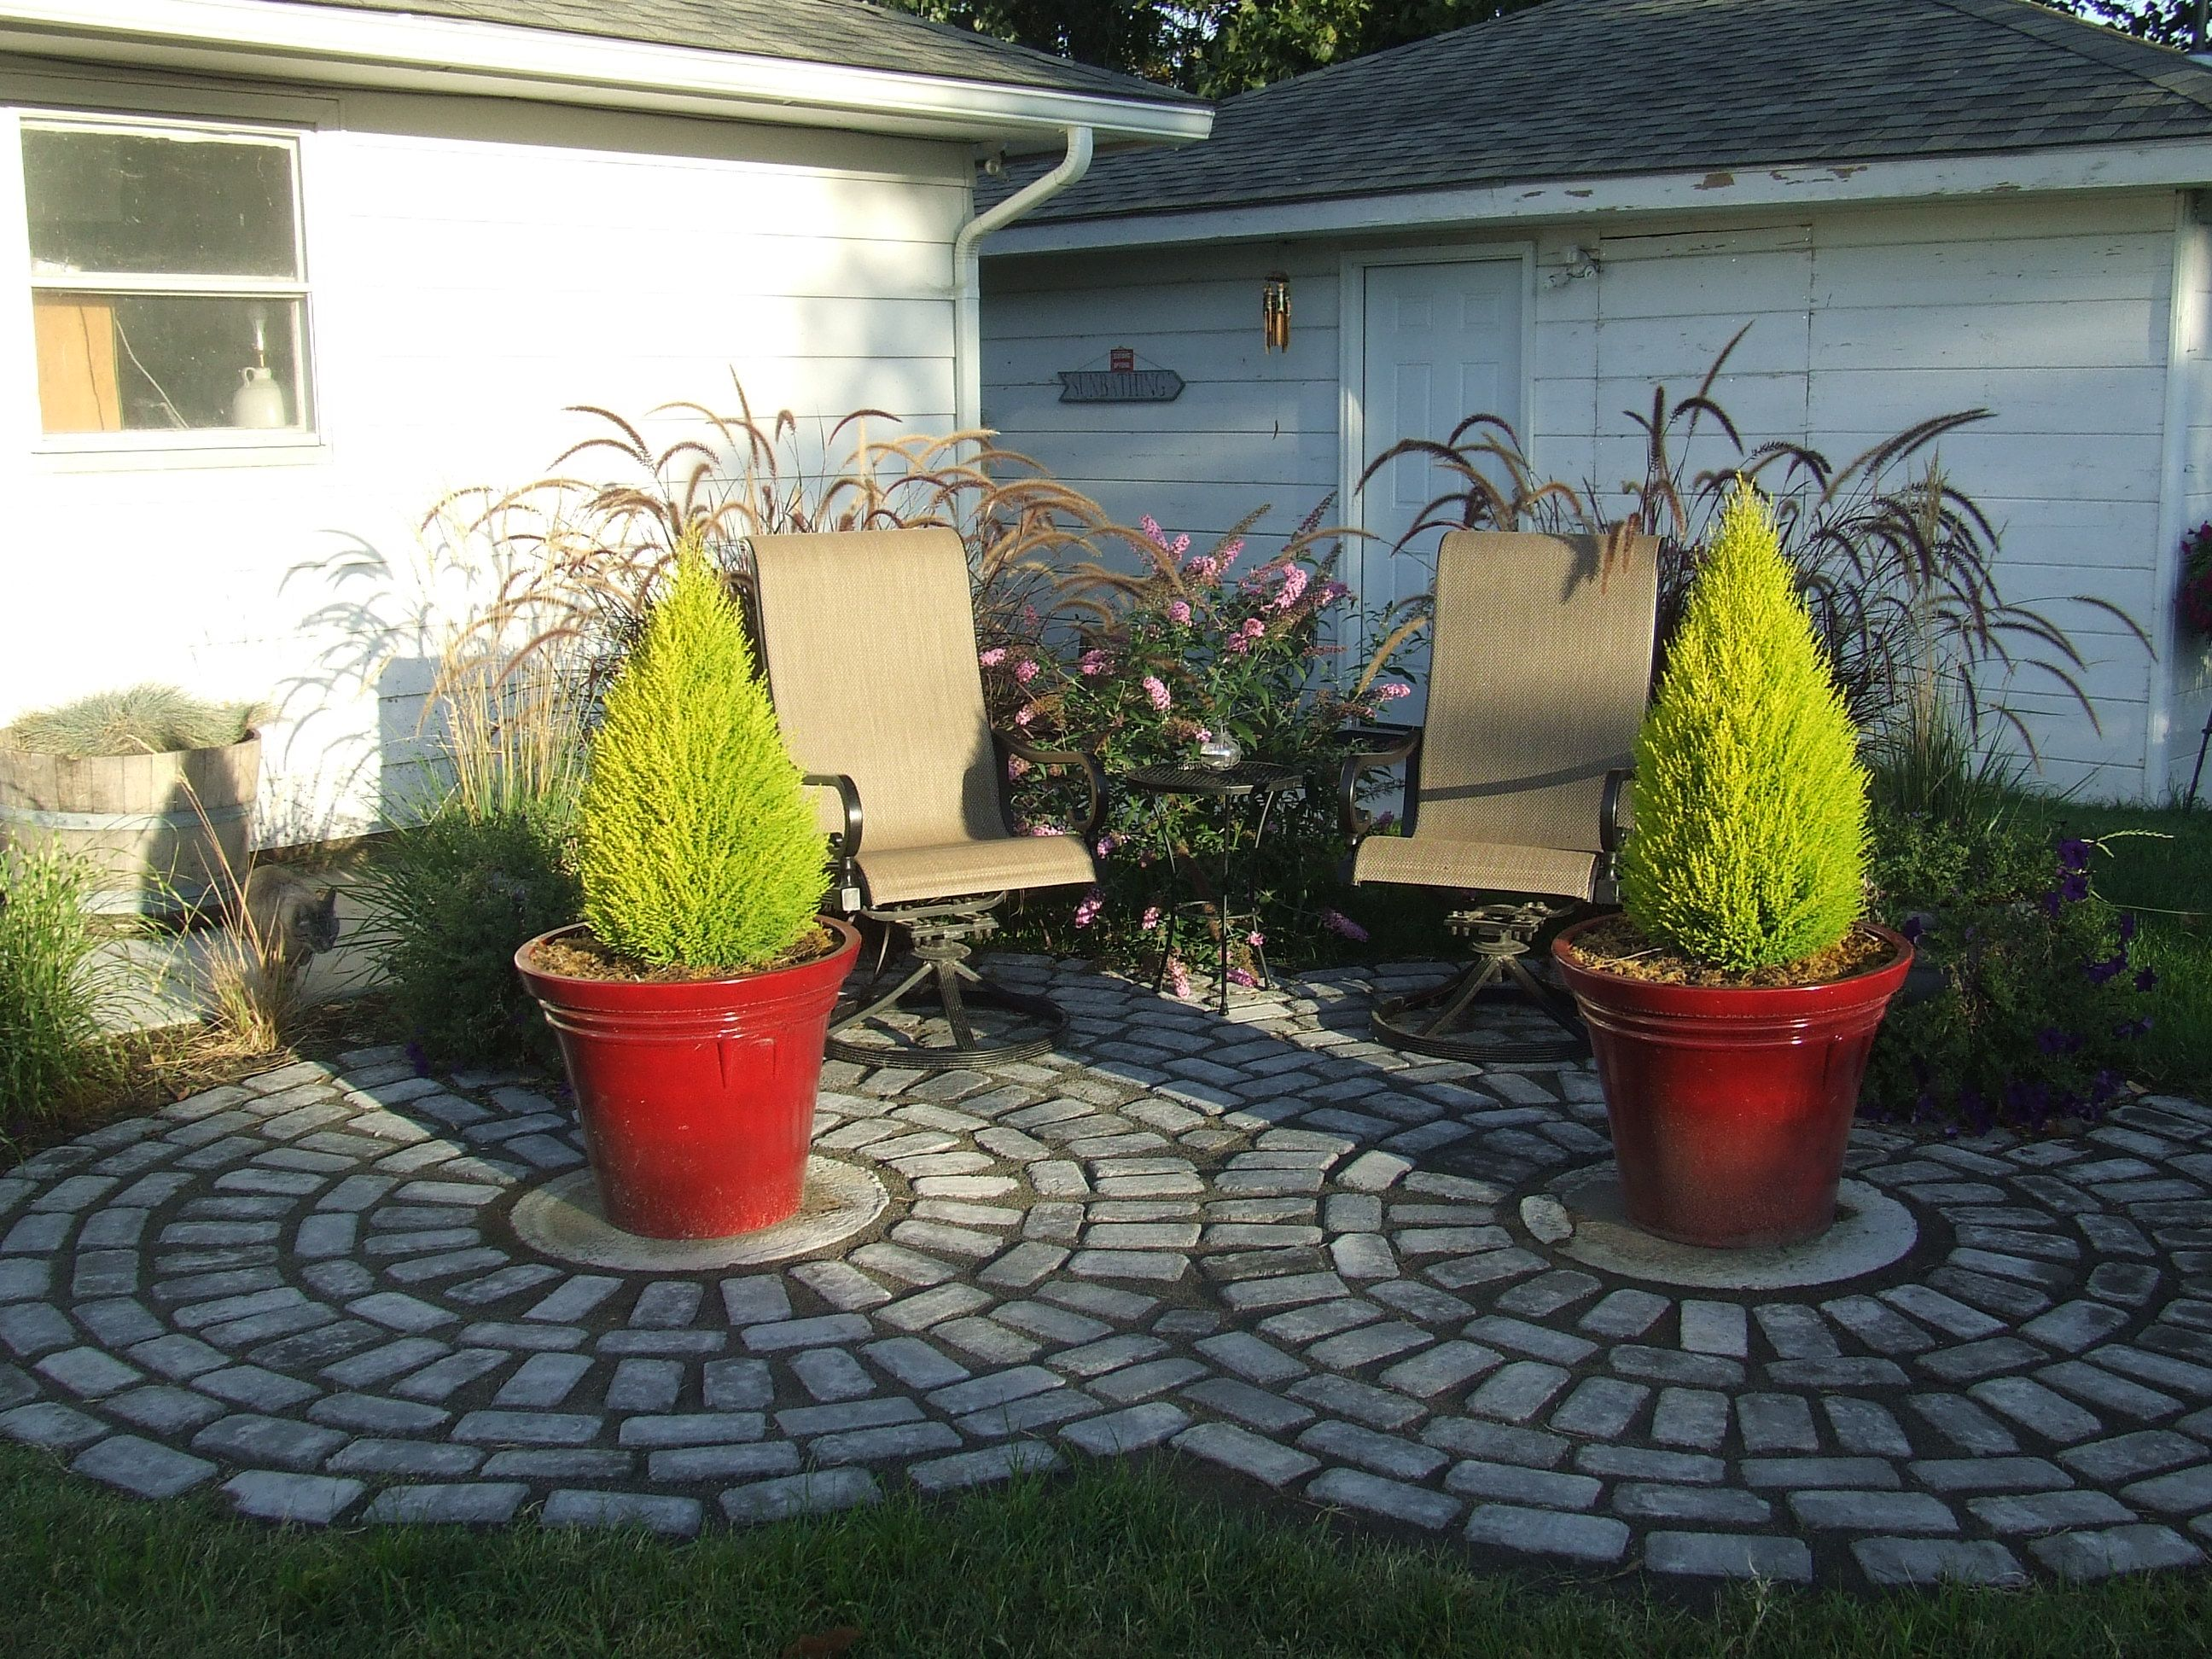 landscaping ideas sitting area to cover the 2 round septic tank